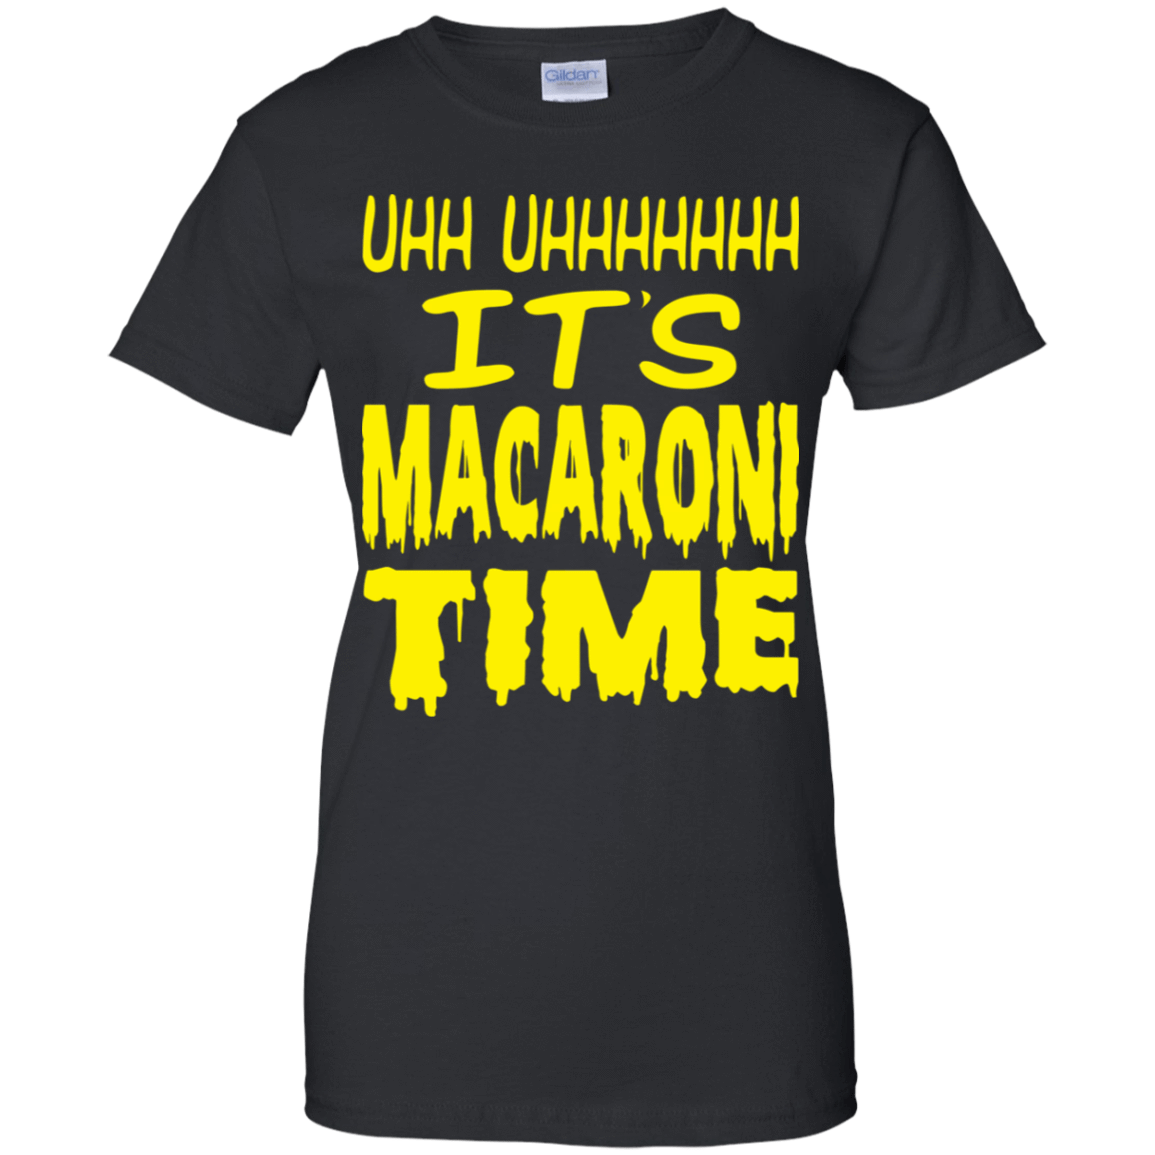 Uhh Uhhhhhhh It's Macaroni Time 939-9248-72774109-44695 - Tee Ript